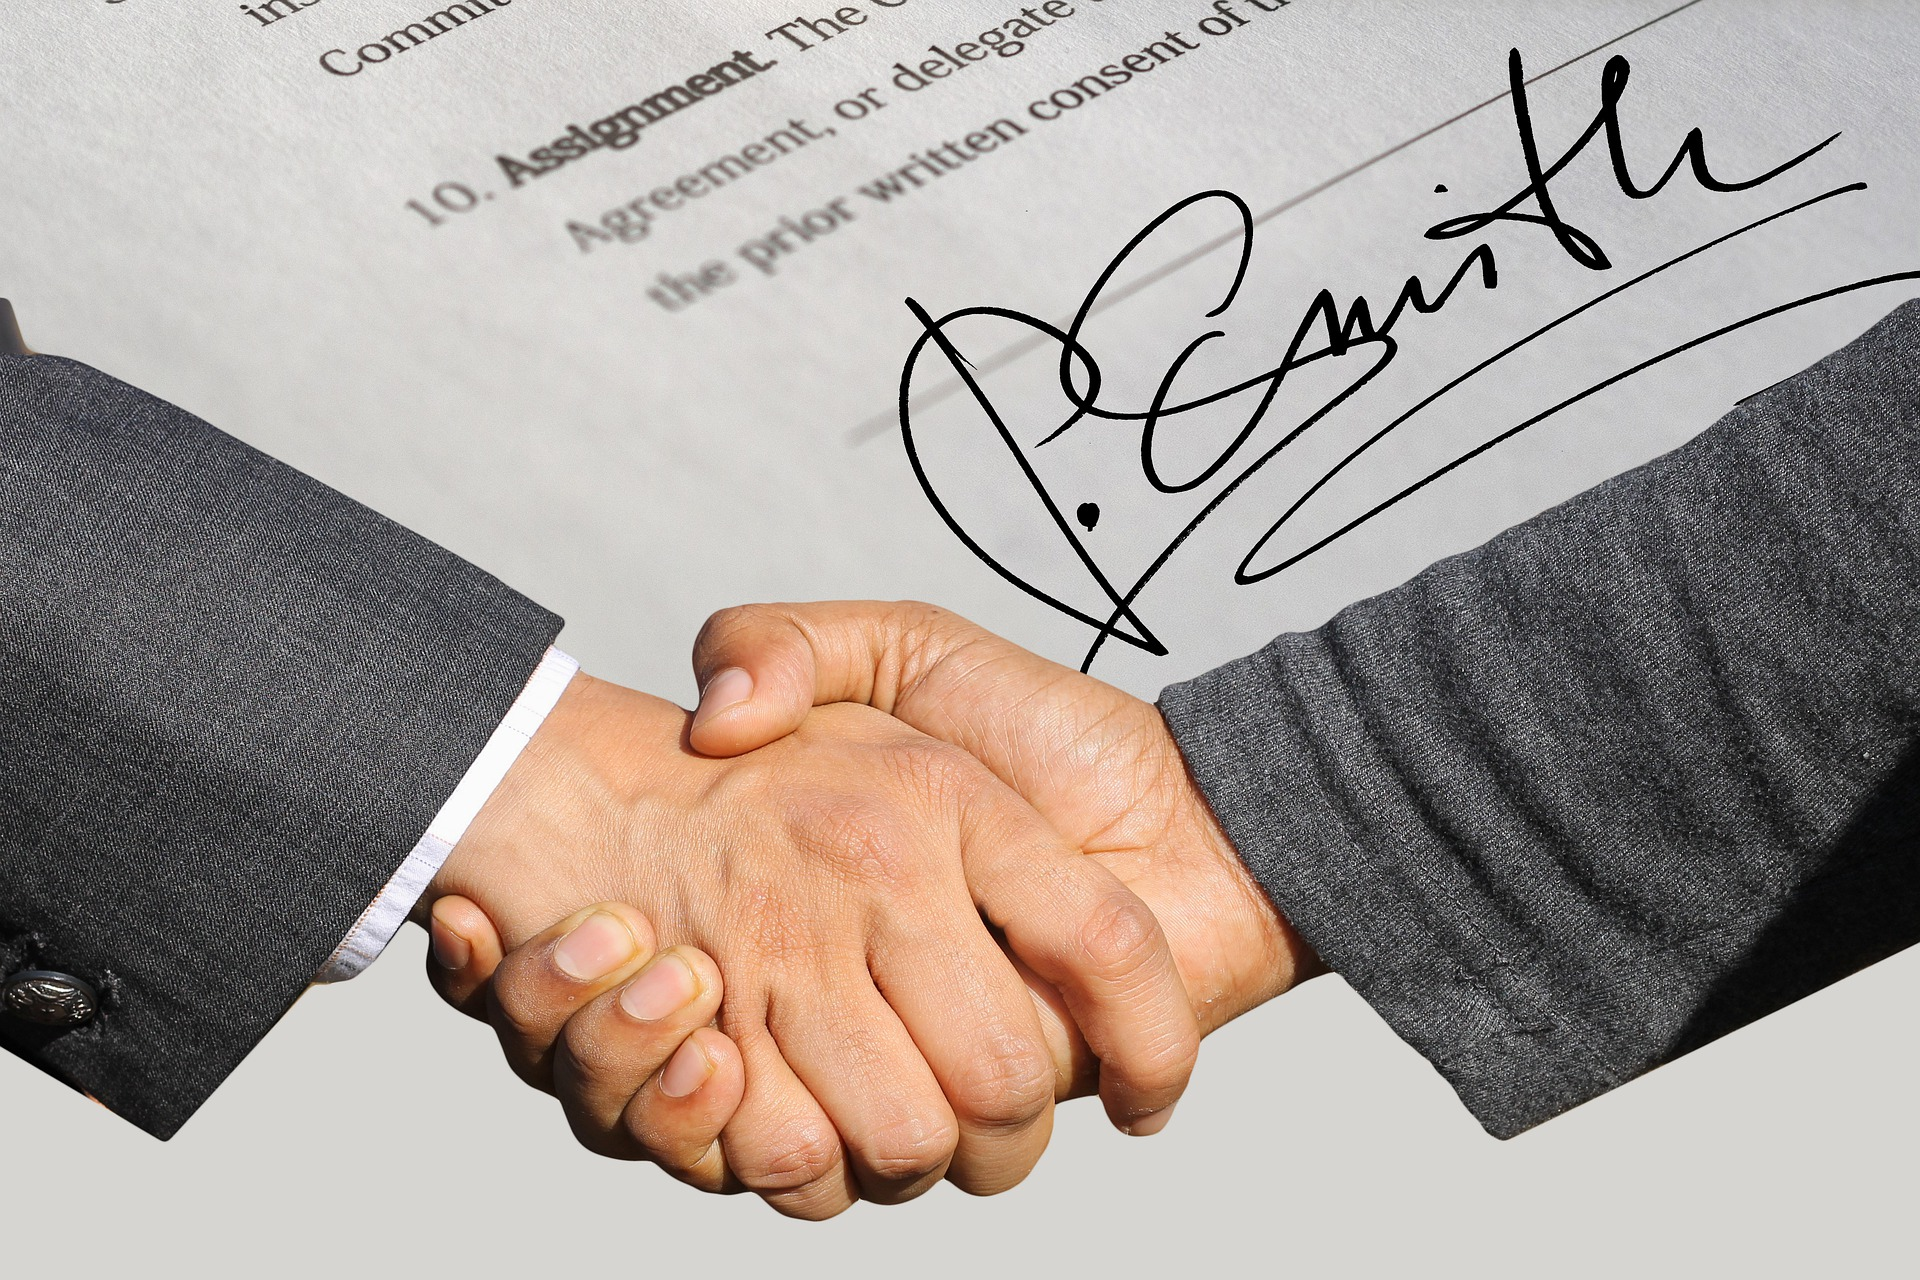 What Public Relations Can Take From Contract Theory